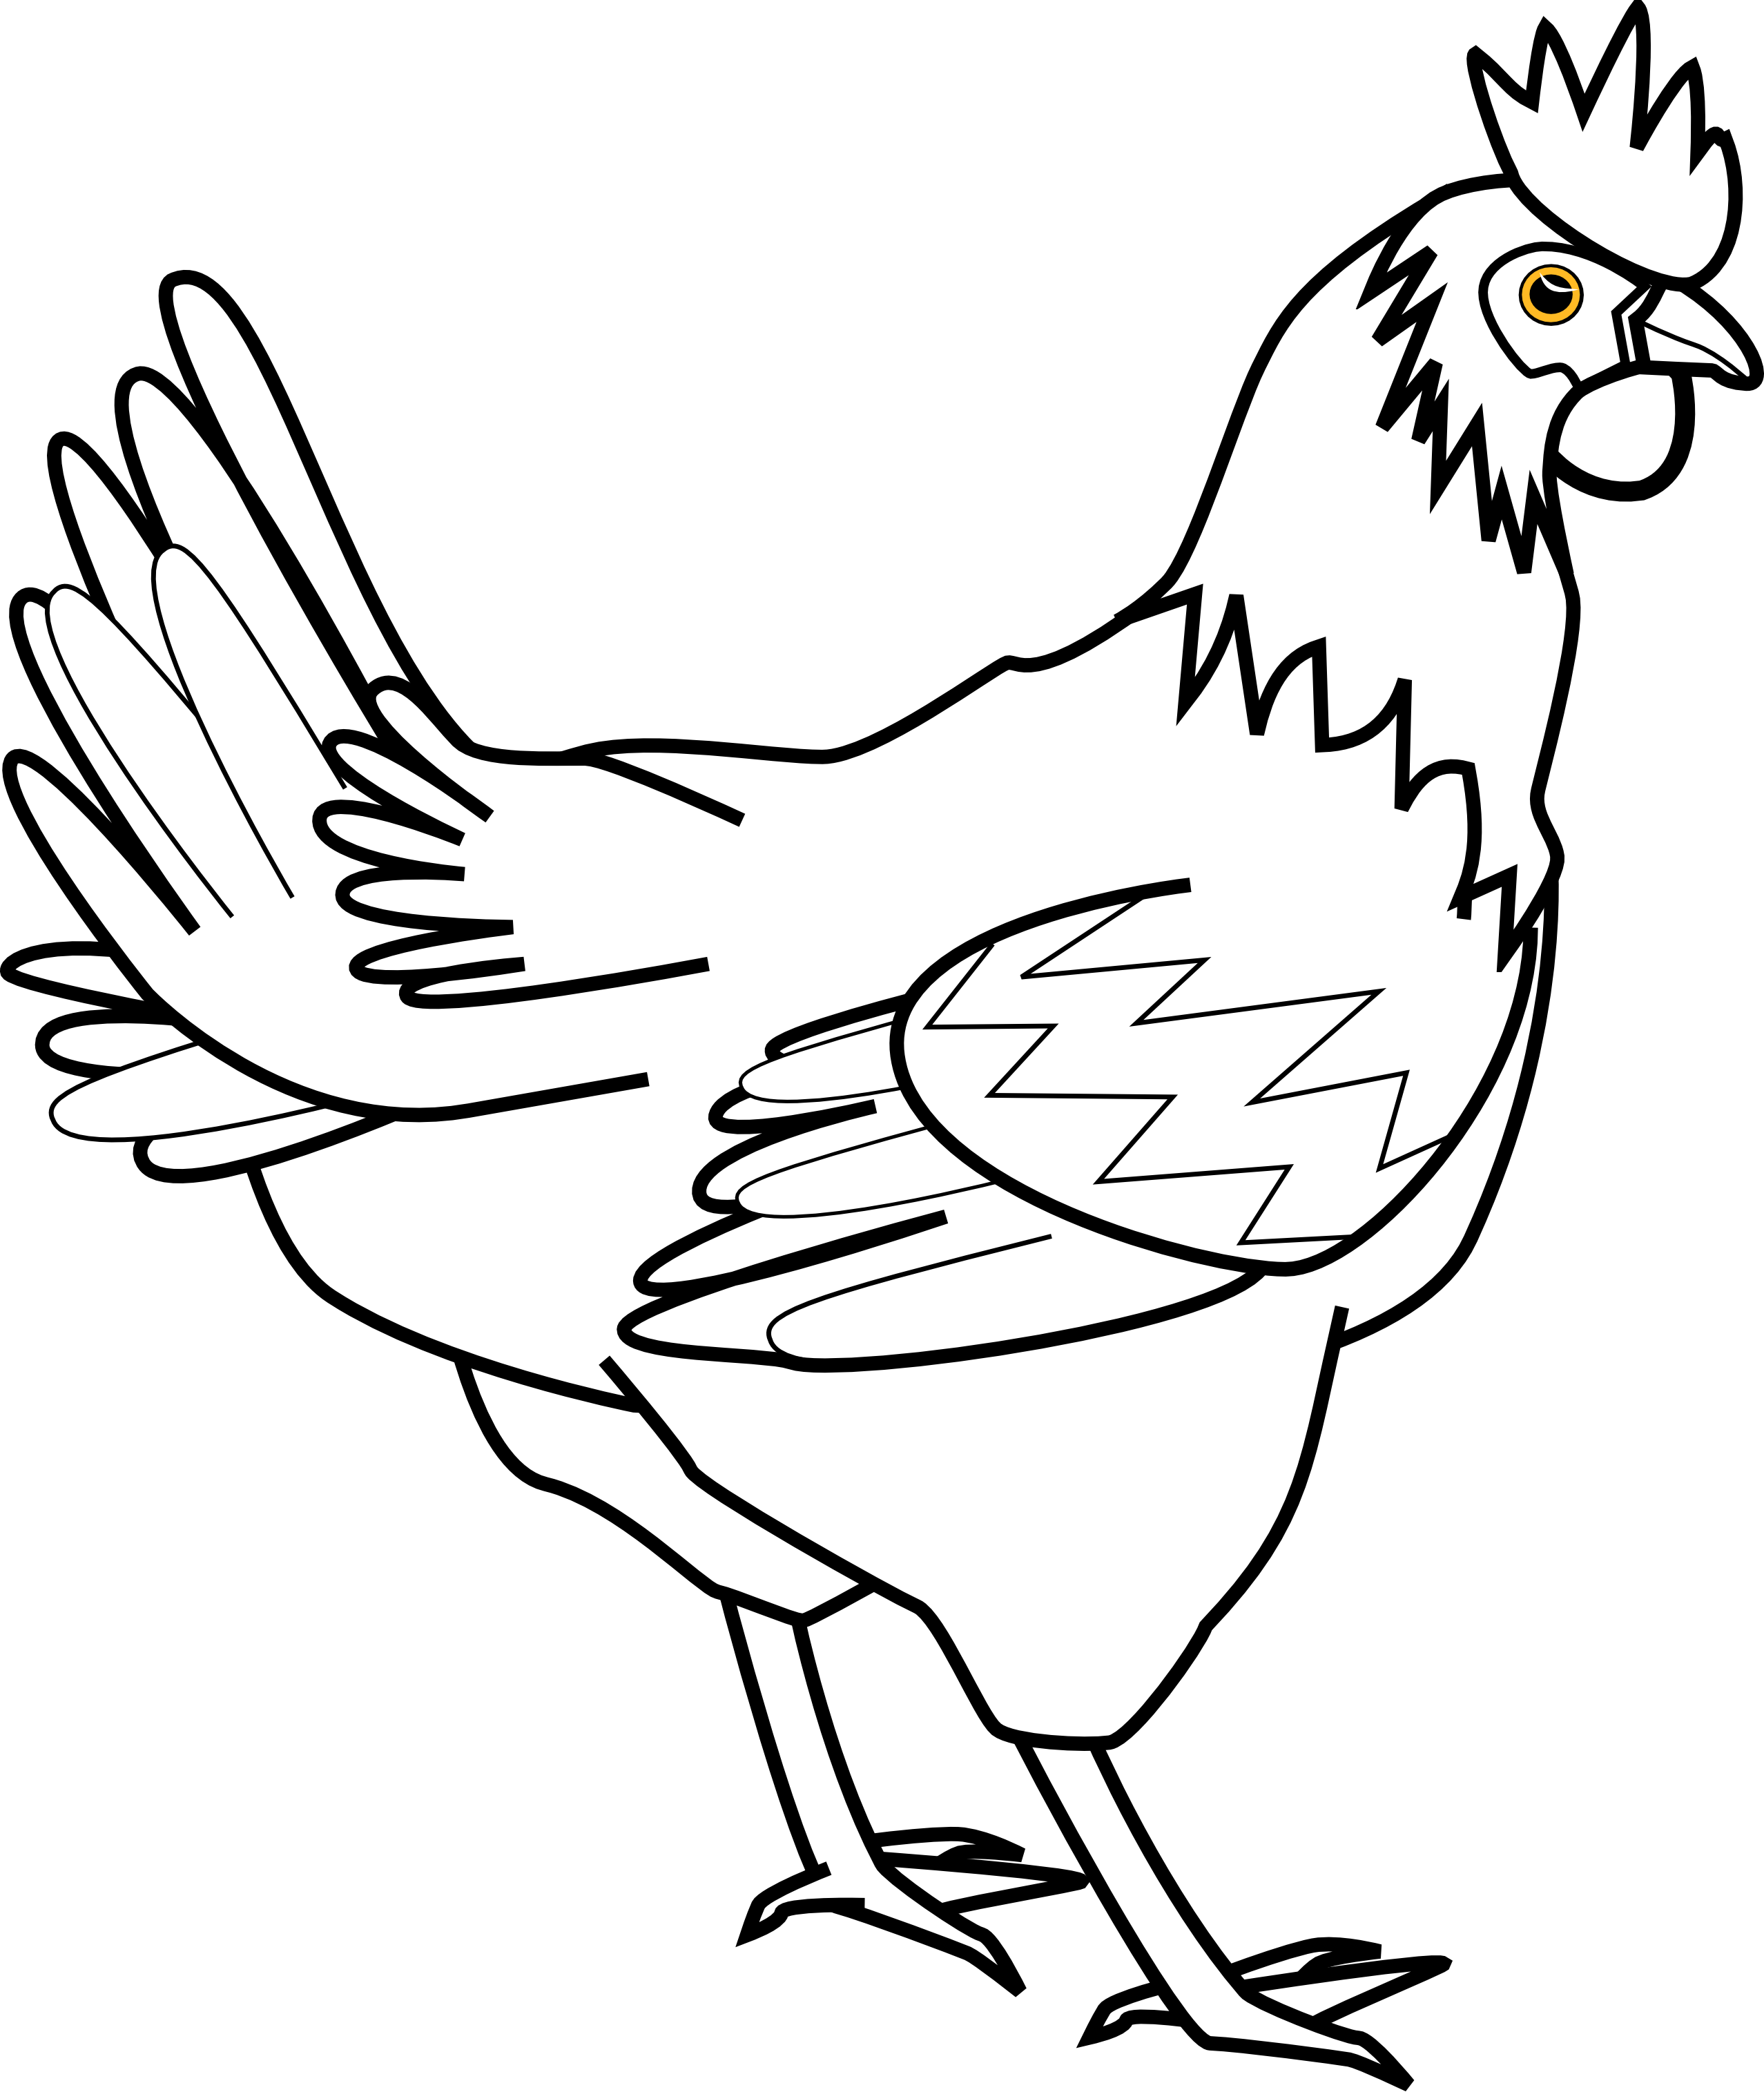 Rooster black and white. Fox clipart chicken